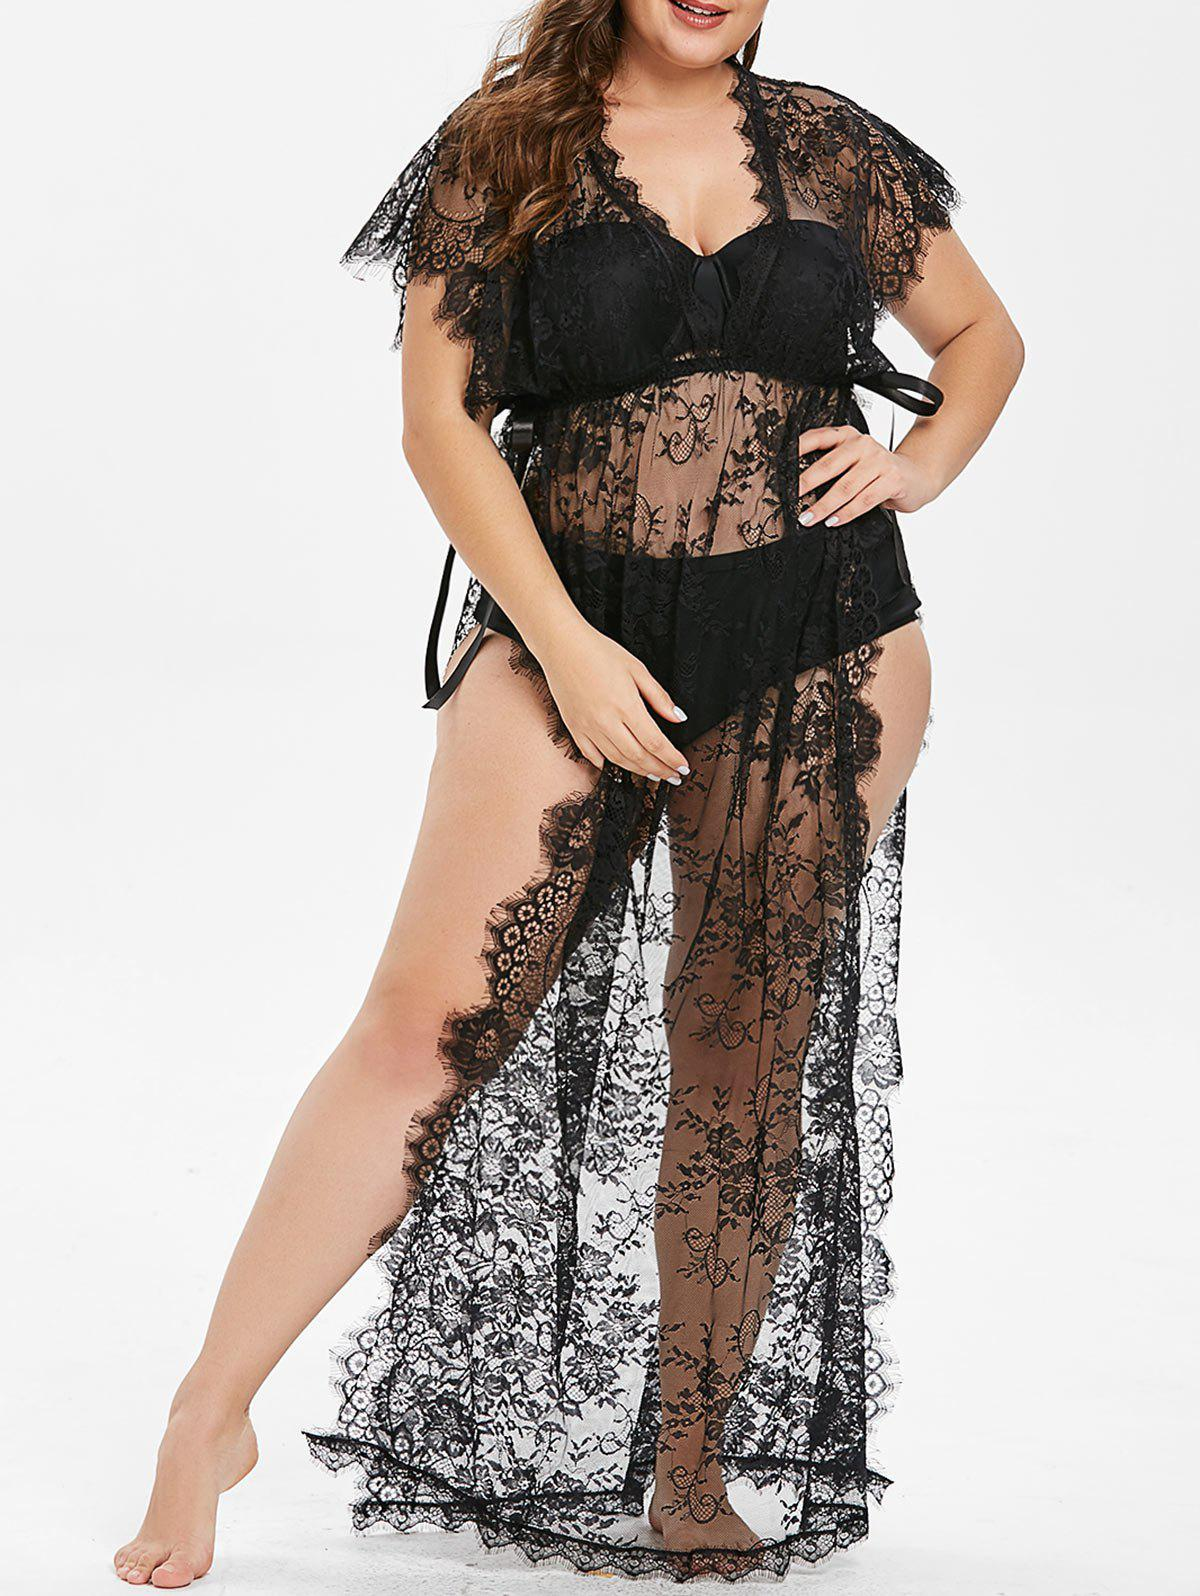 14409acda59 2019 Plus Size Side Slit Lace Lingerie Dress